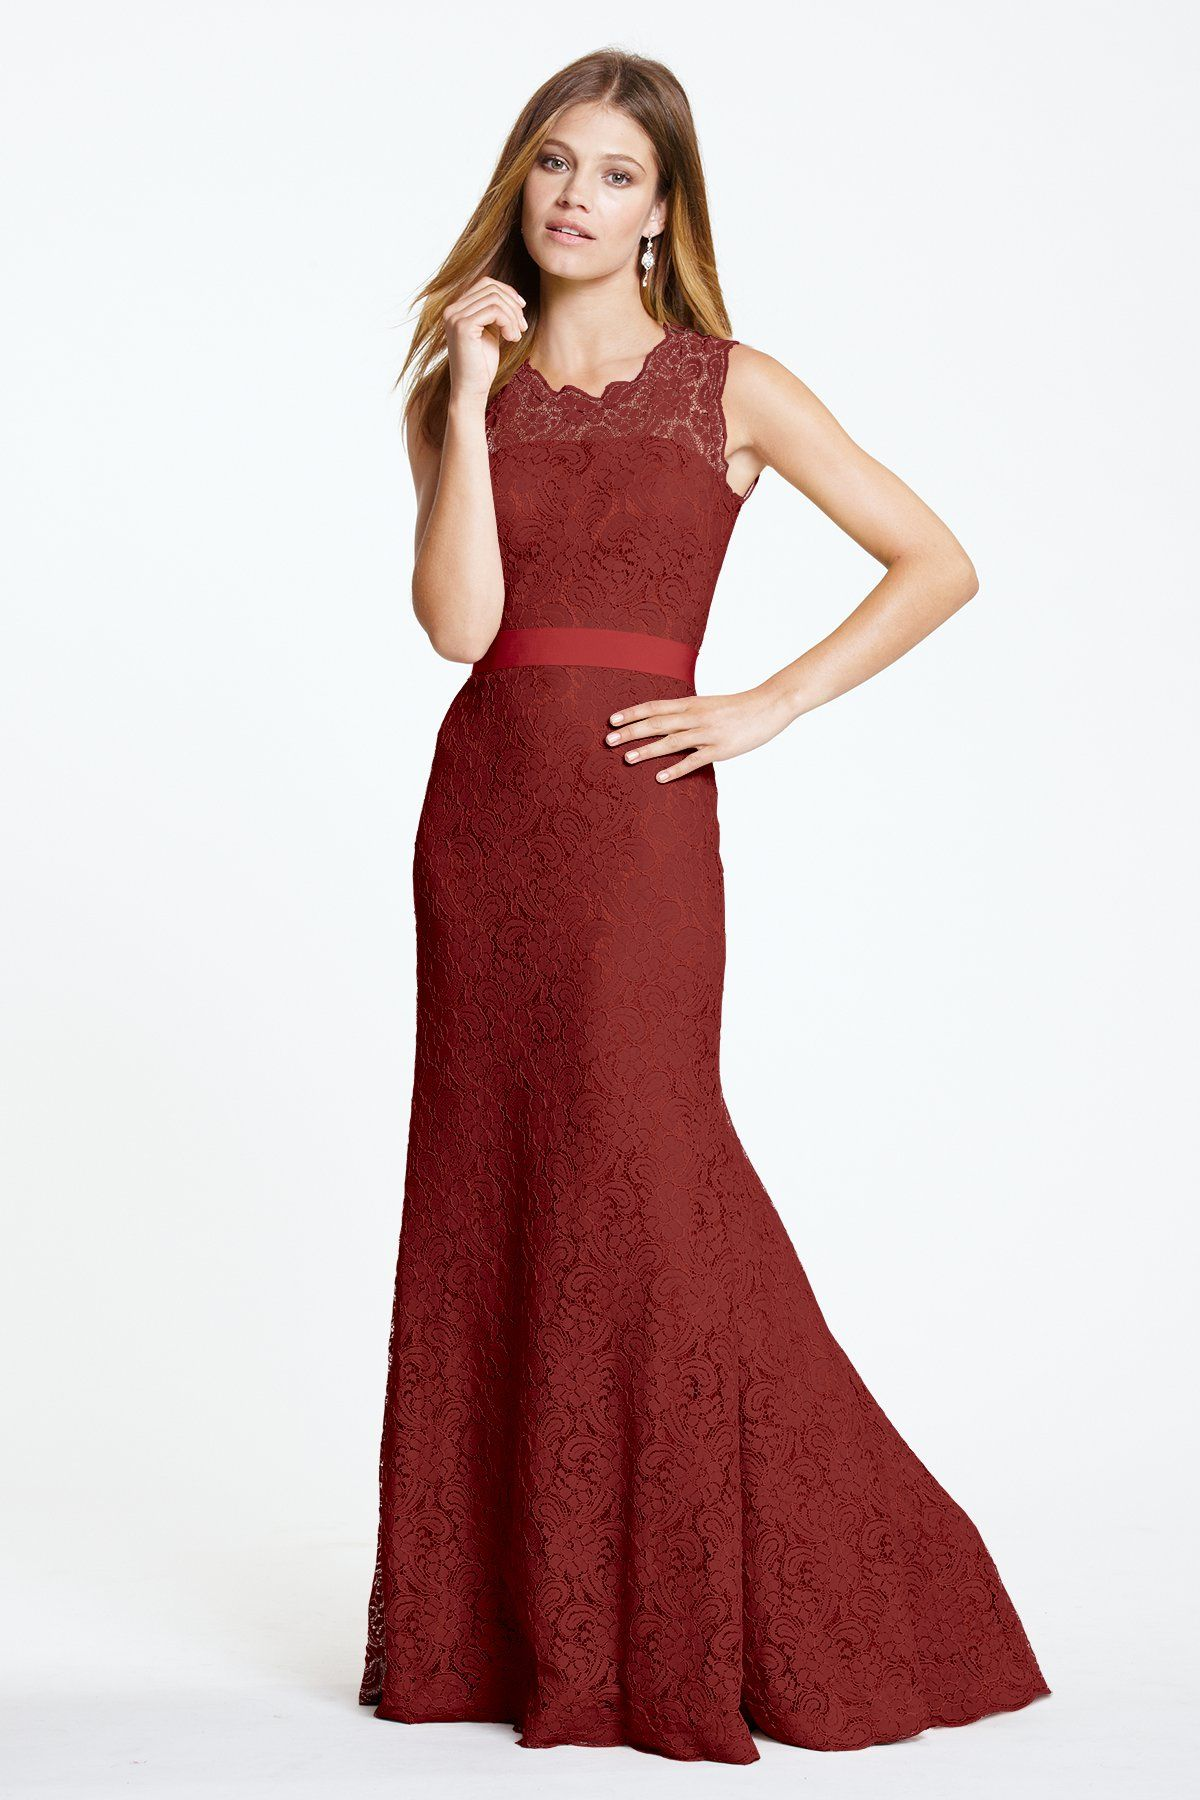 Watters andrea bridesmaid dress burgundy cinnamon and cherry watters andrea bridesmaid dress burgundy cinnamon and cherry ombrellifo Images